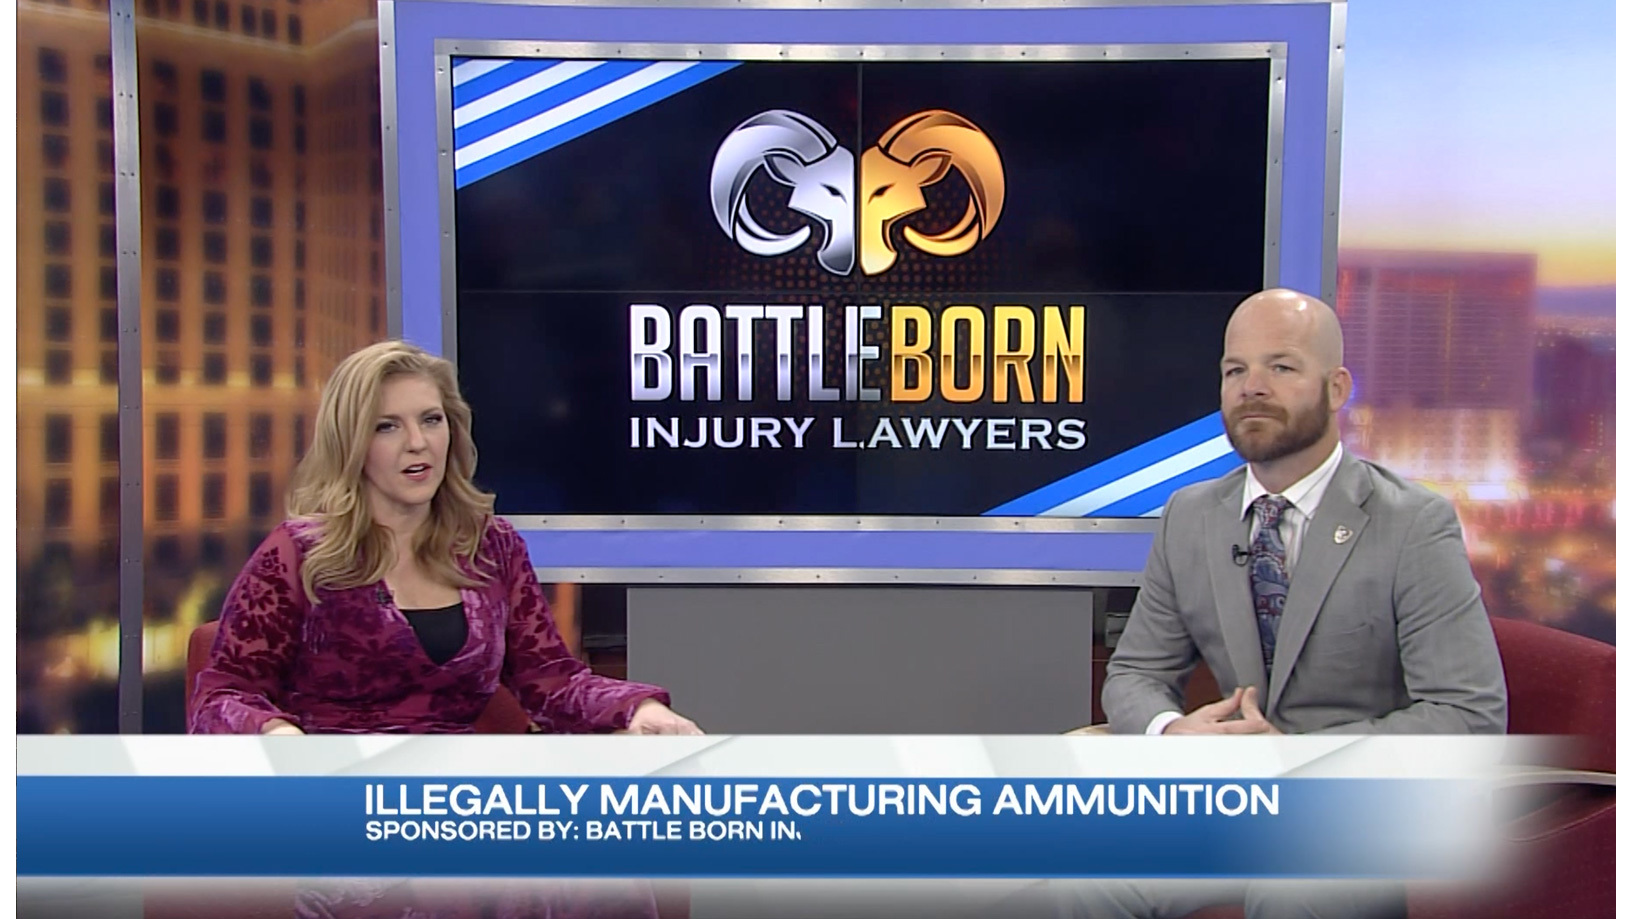 Battle Born lawyers on illegally manufactured bullets